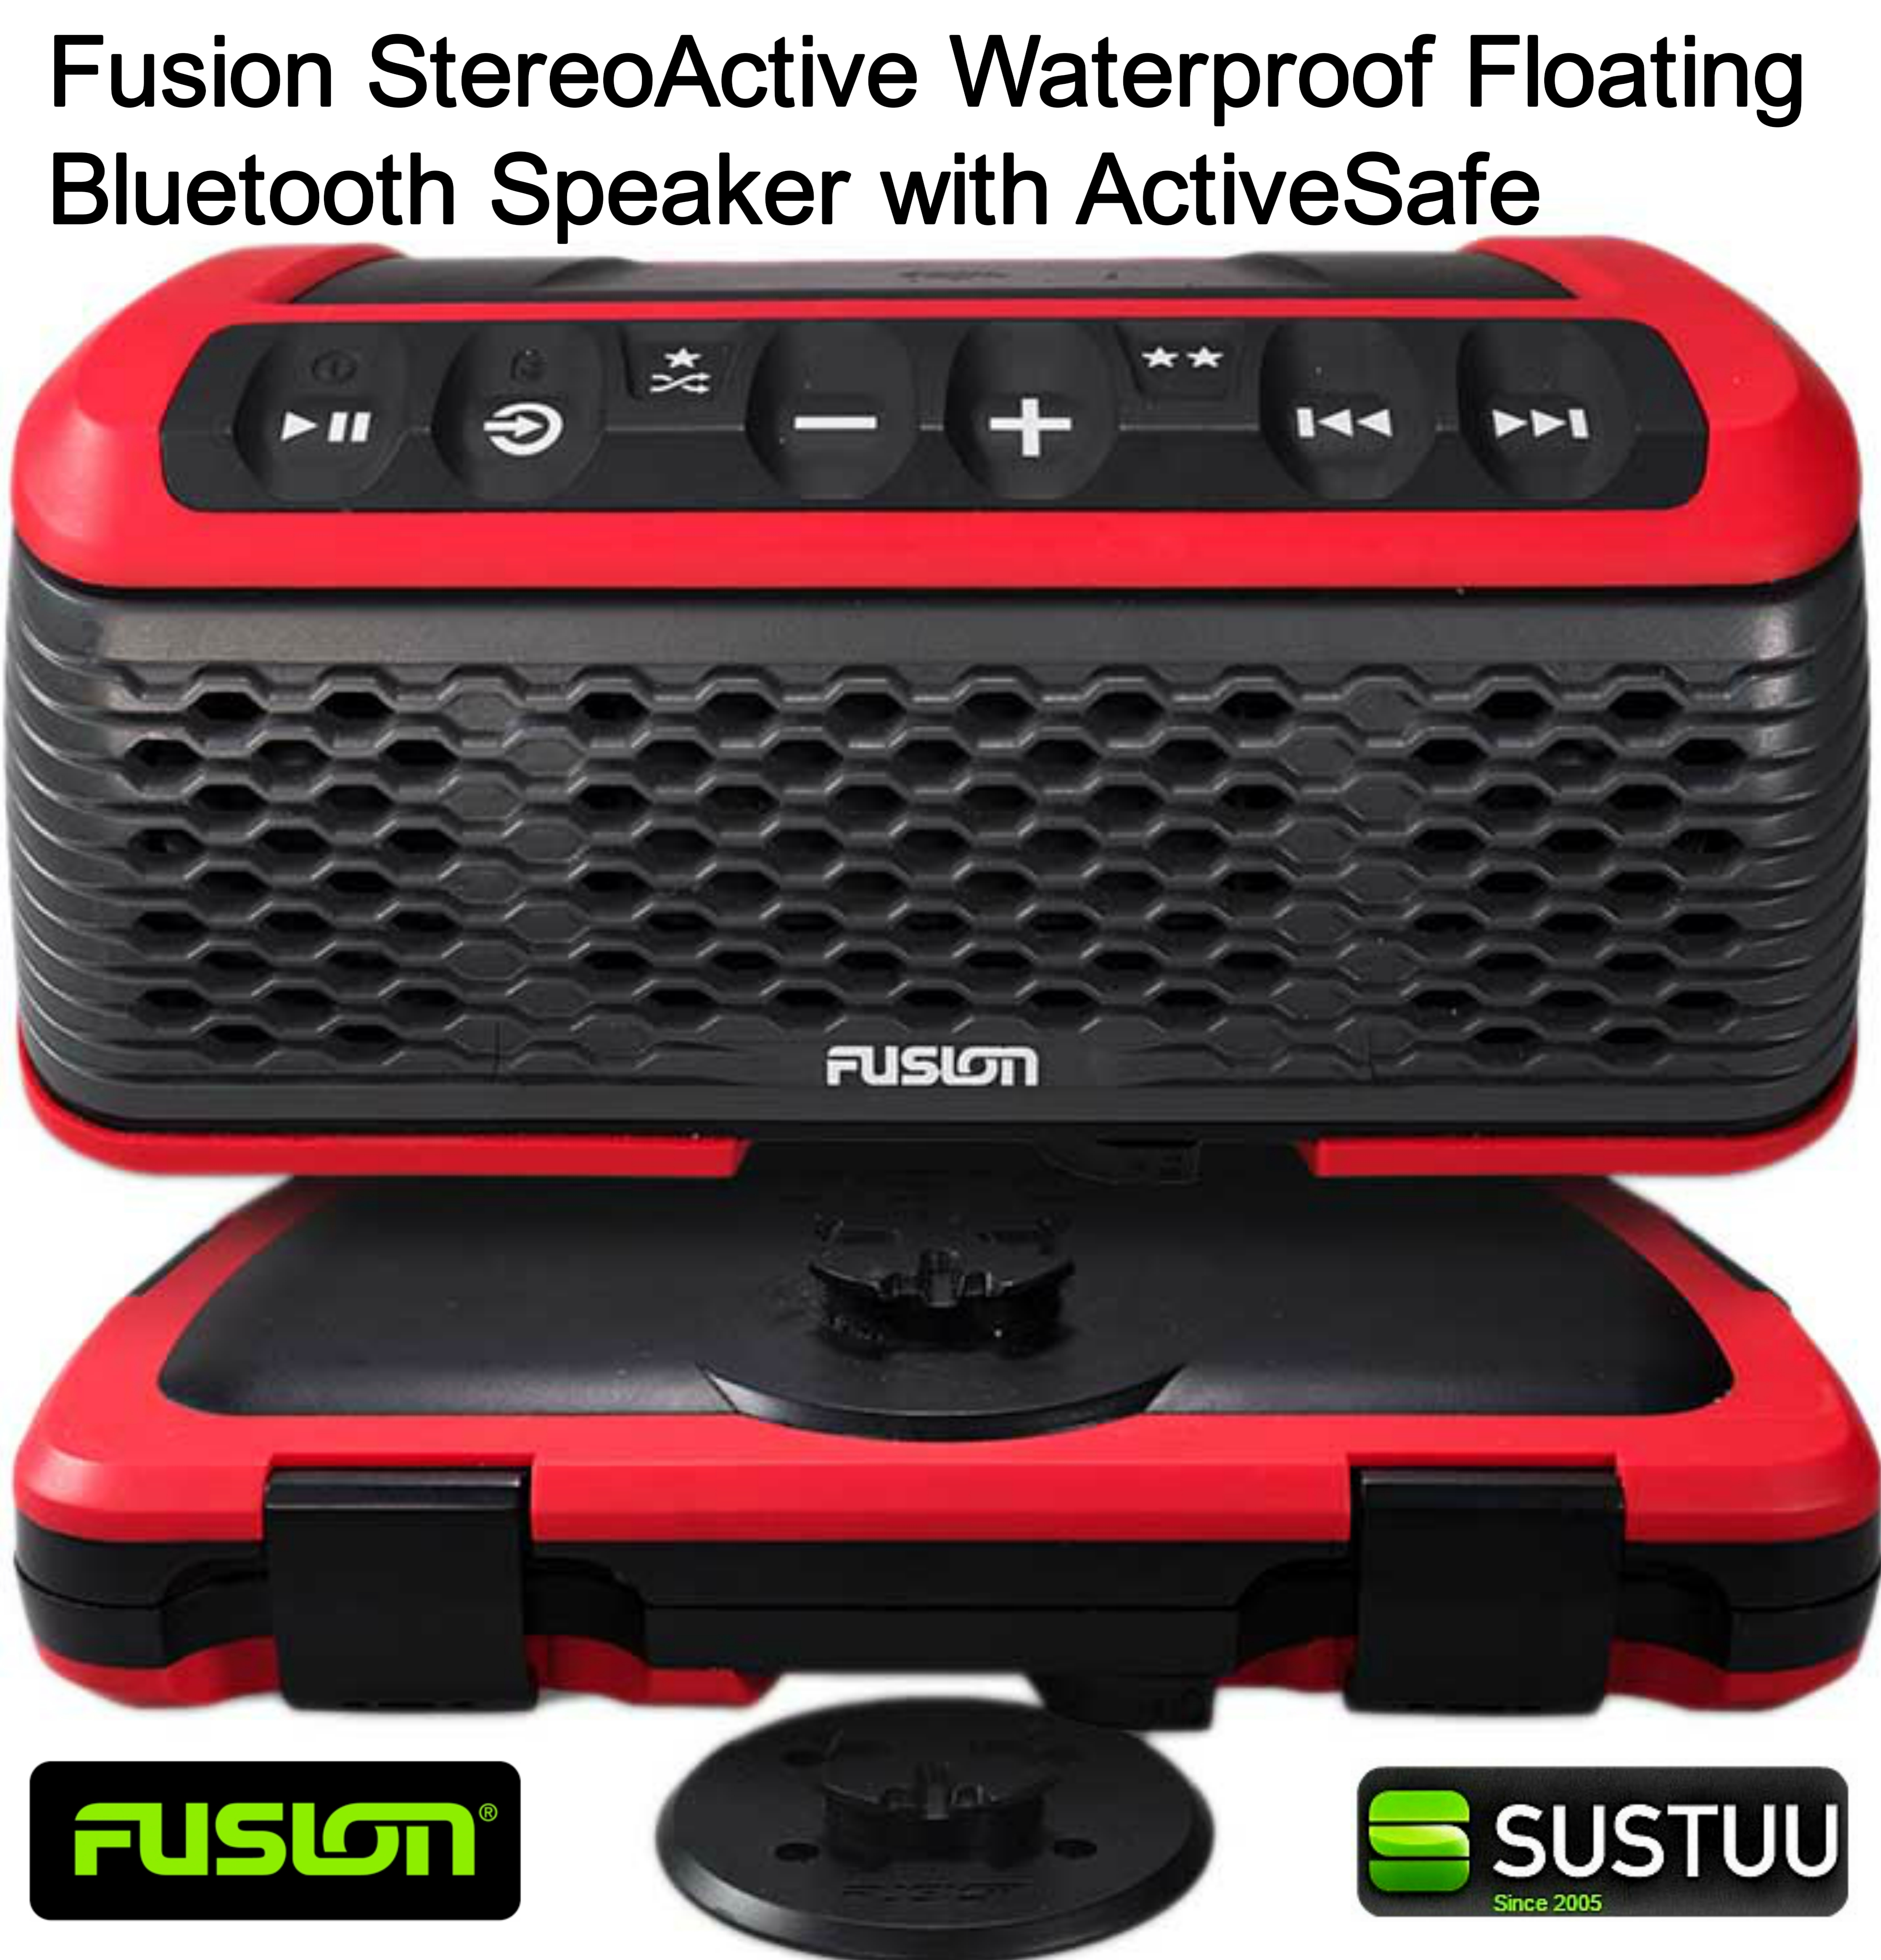 Fusion StereoActive Waterproof Floating Bluetooth Speaker with ActiveSafe - RED